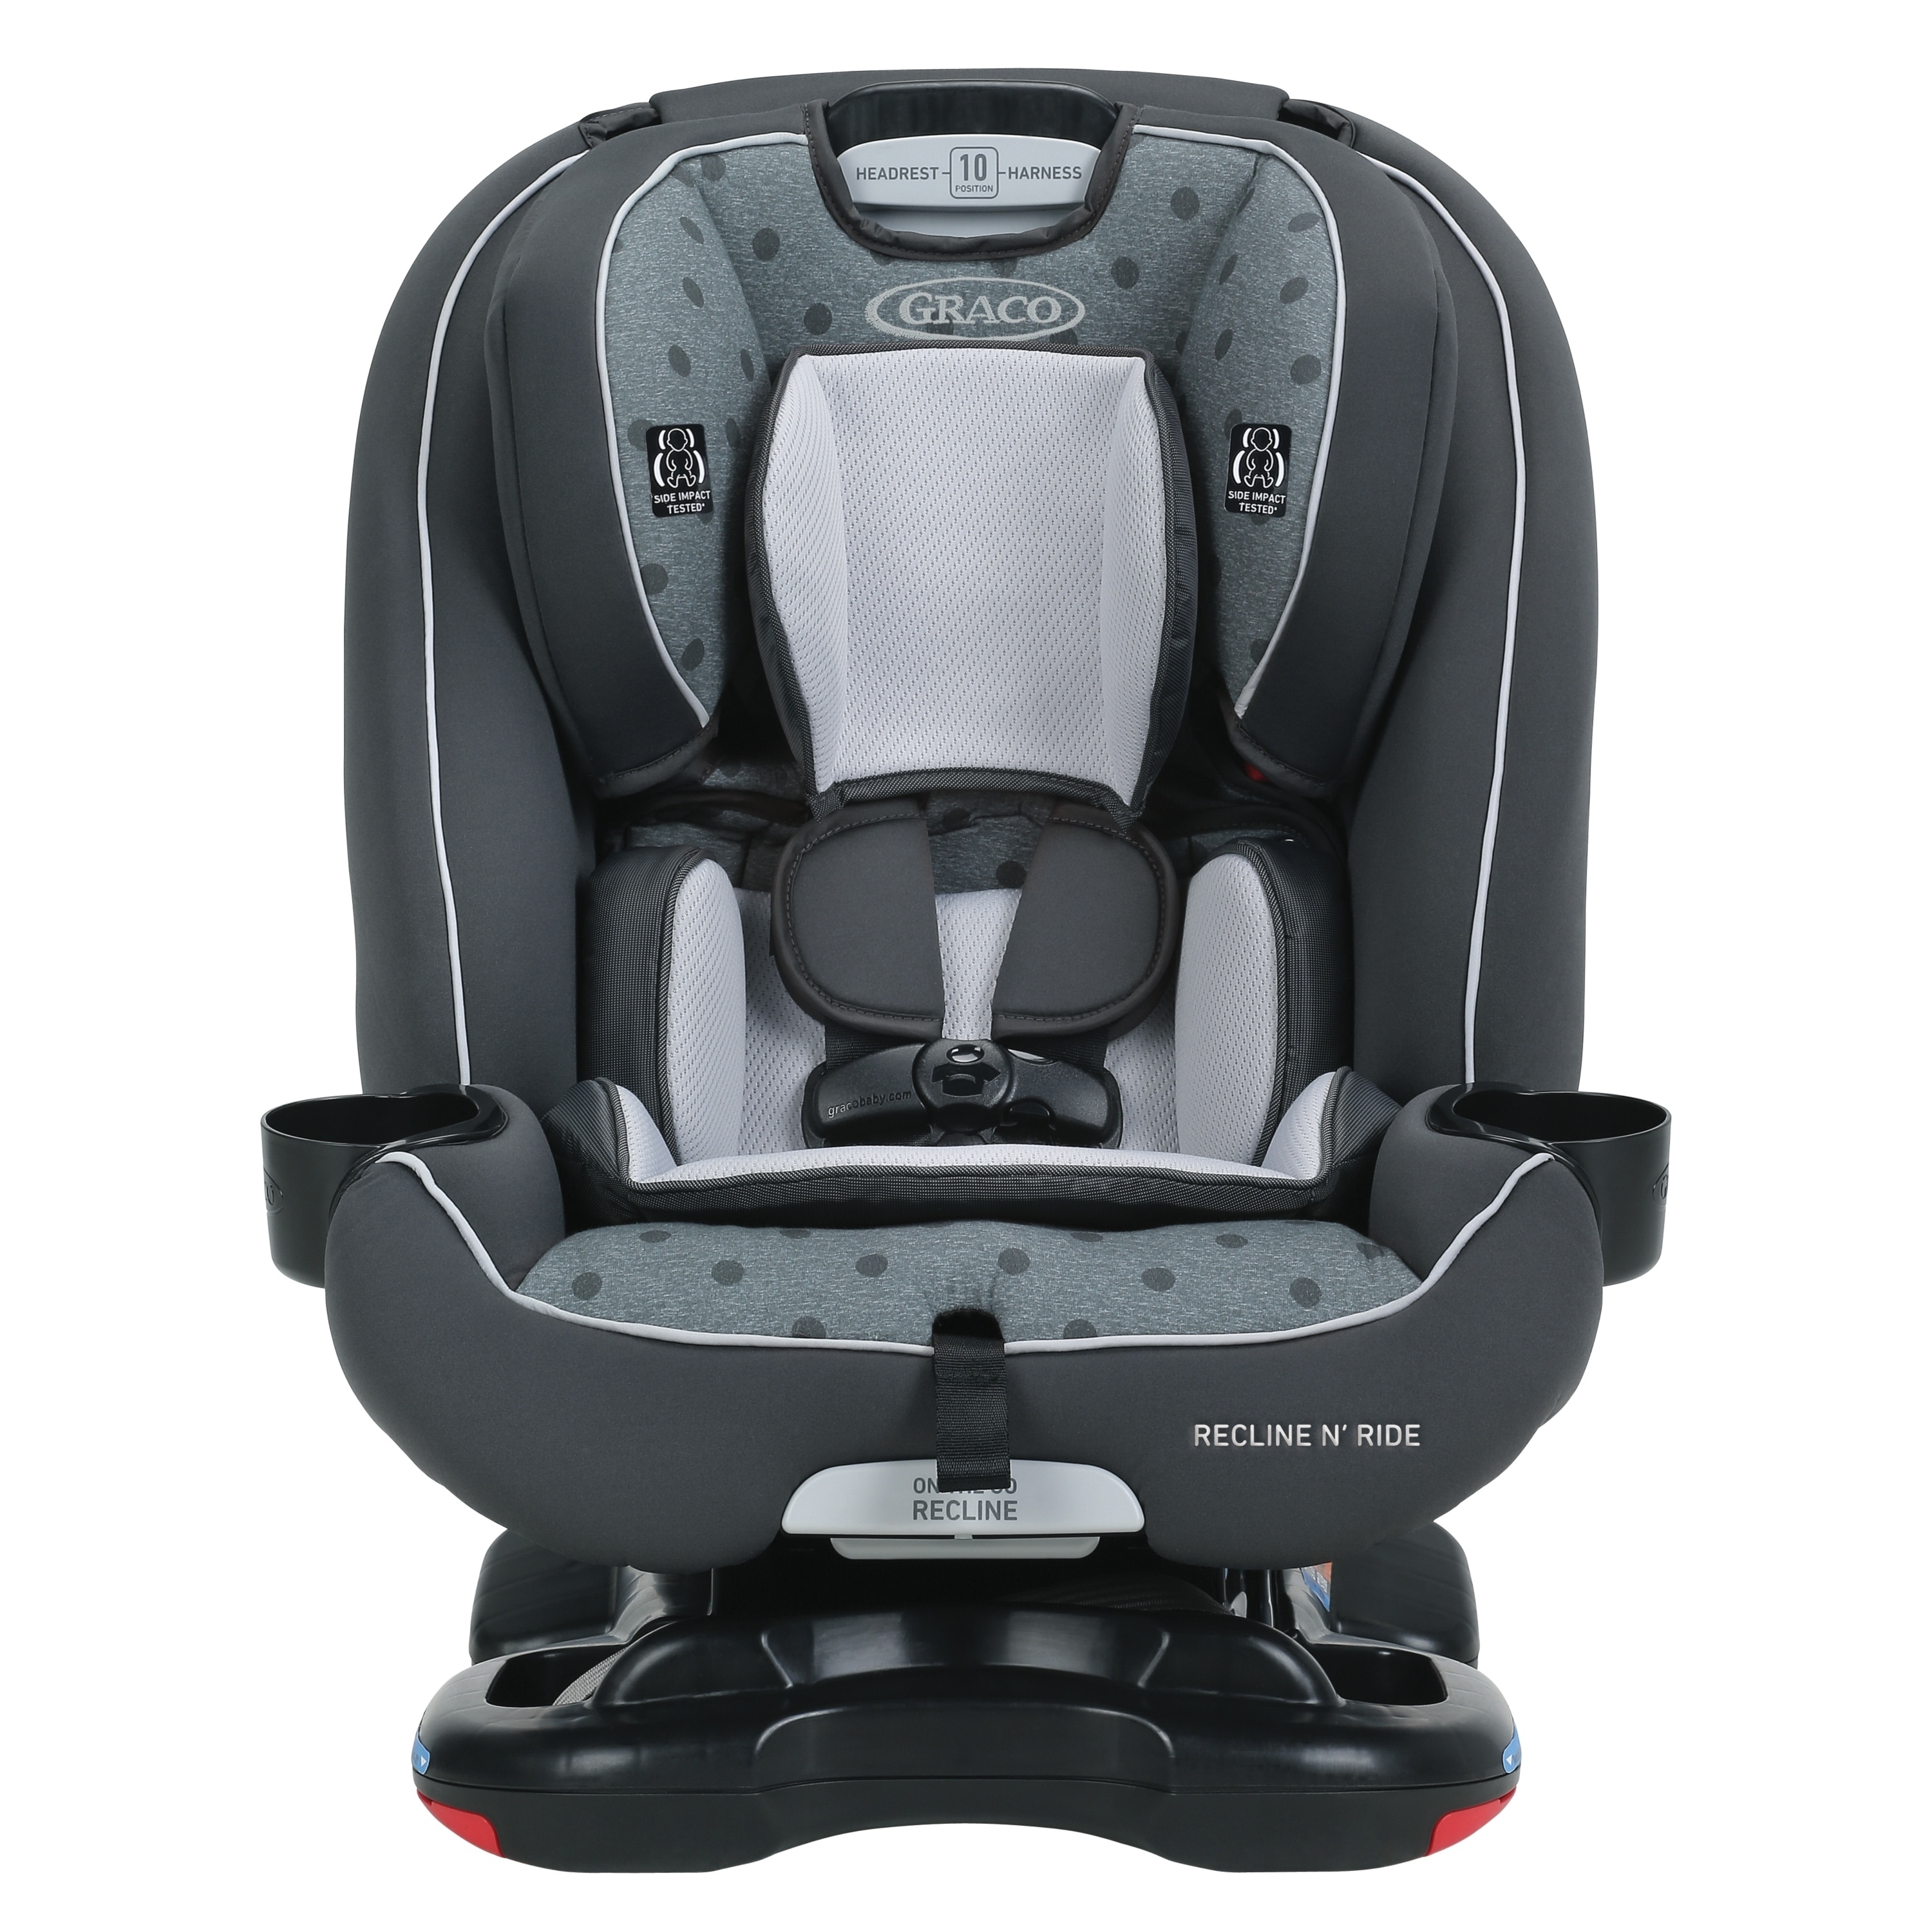 Shop GracoR Recline N RideTM 3 In 1 Car Seat Featuring On The GoTM Clifton